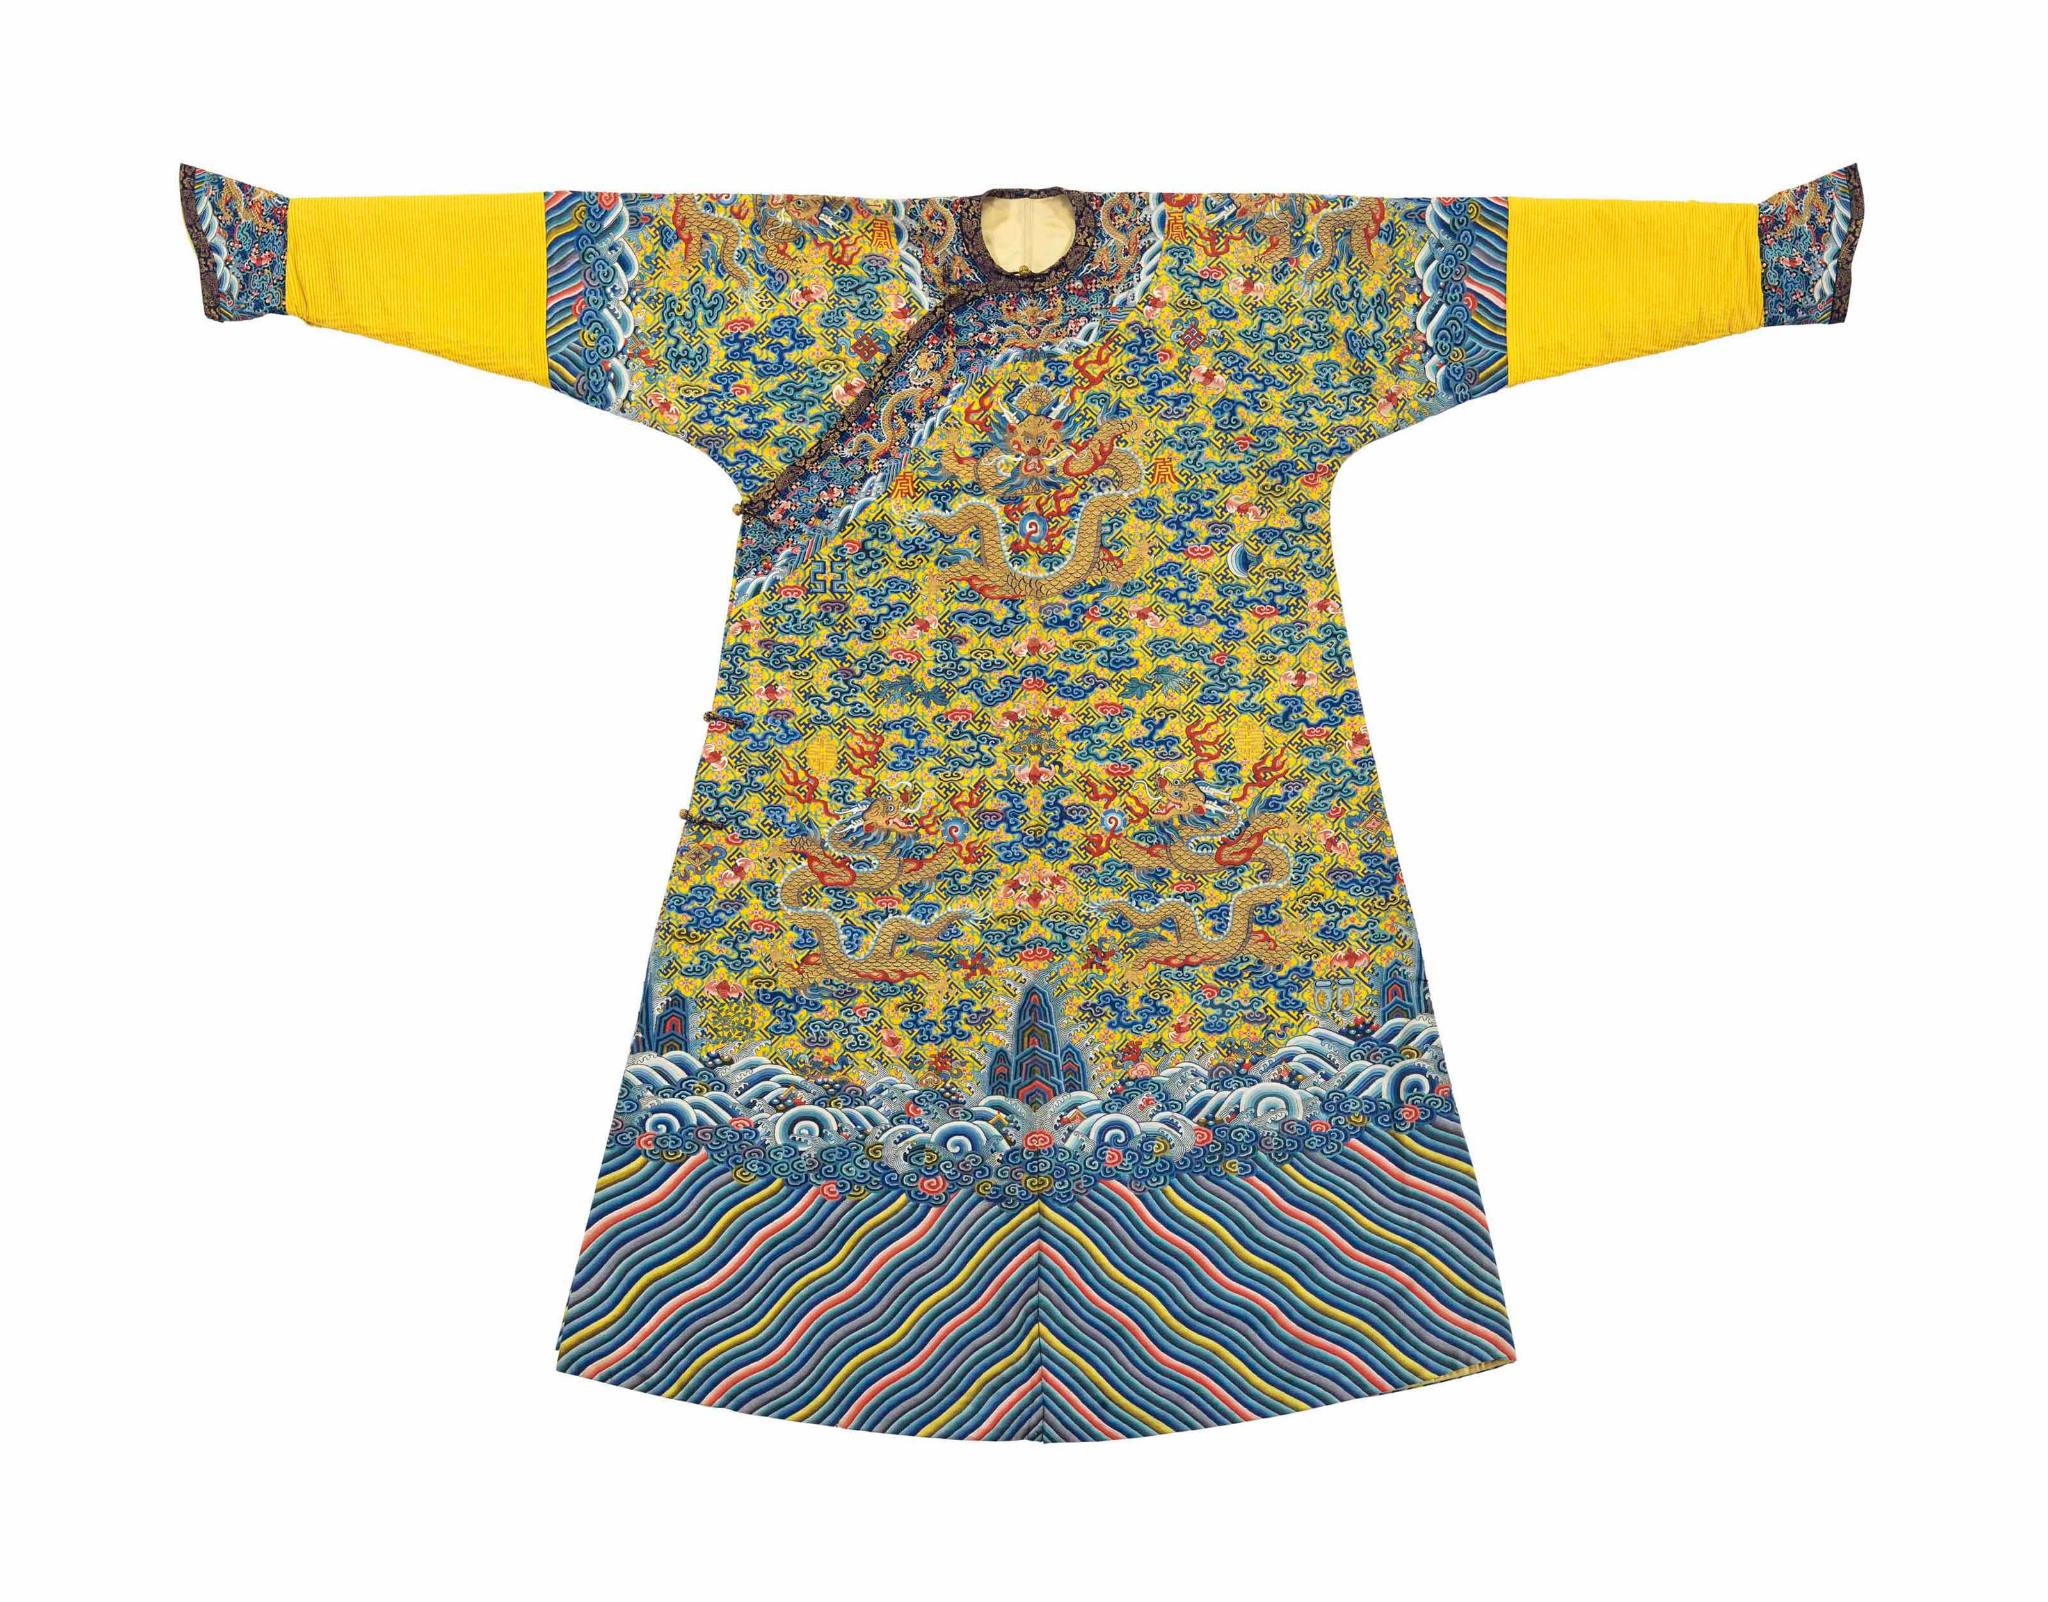 A Magnificent Imperial Yellow Kesi Twelve Symbol Dragon Robe Made